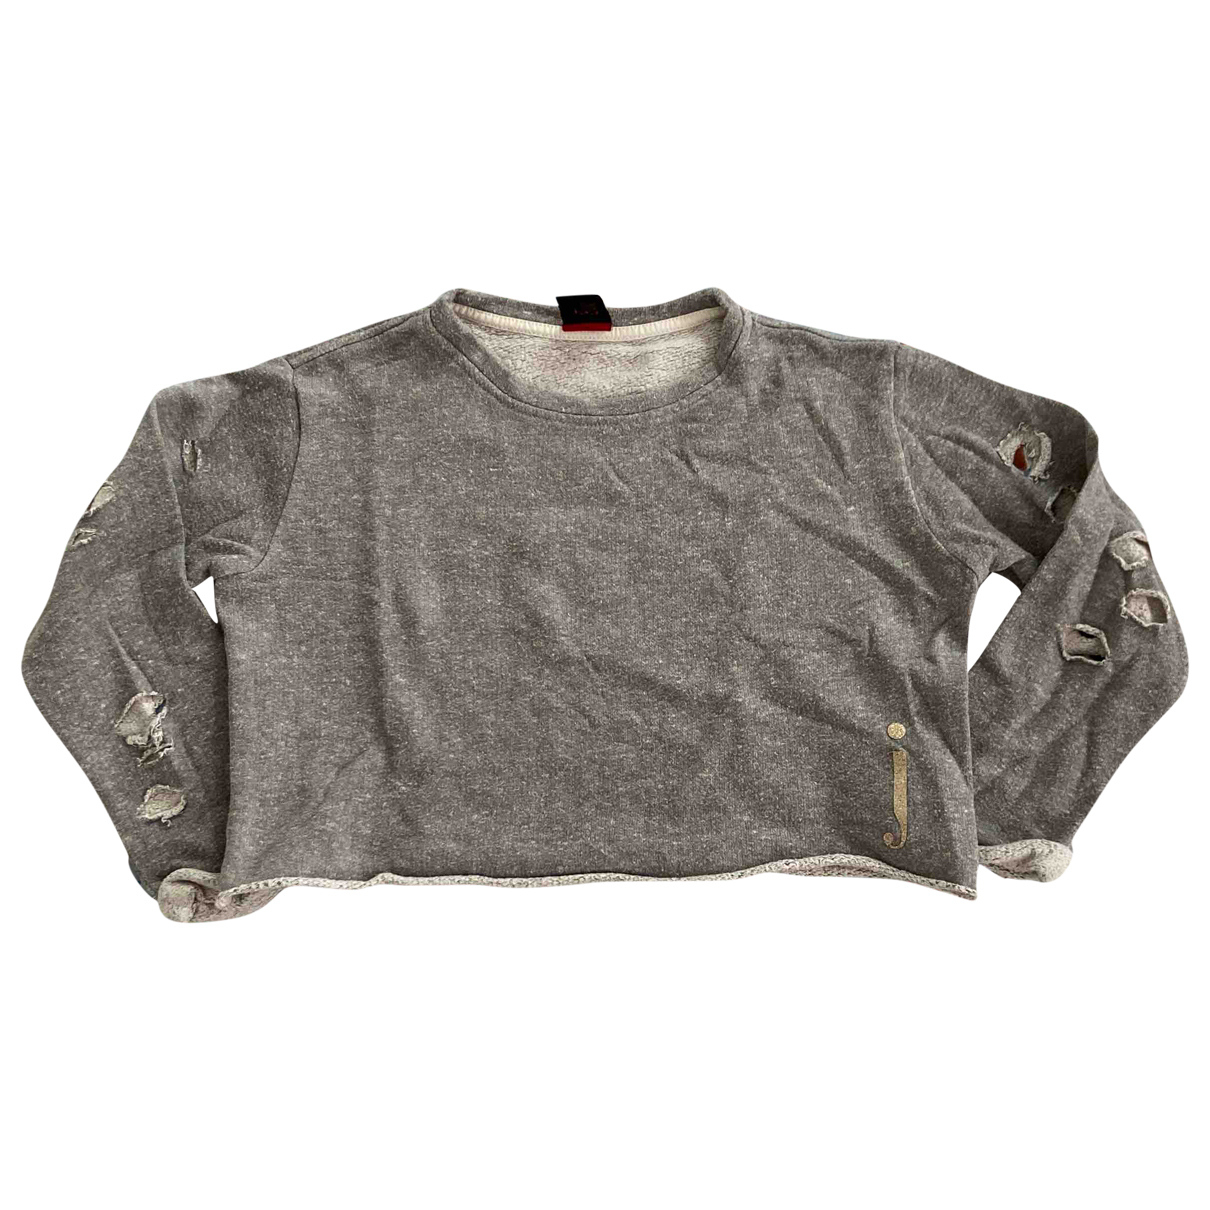 Jijil N Grey Cotton Knitwear for Kids 8 years - up to 128cm FR